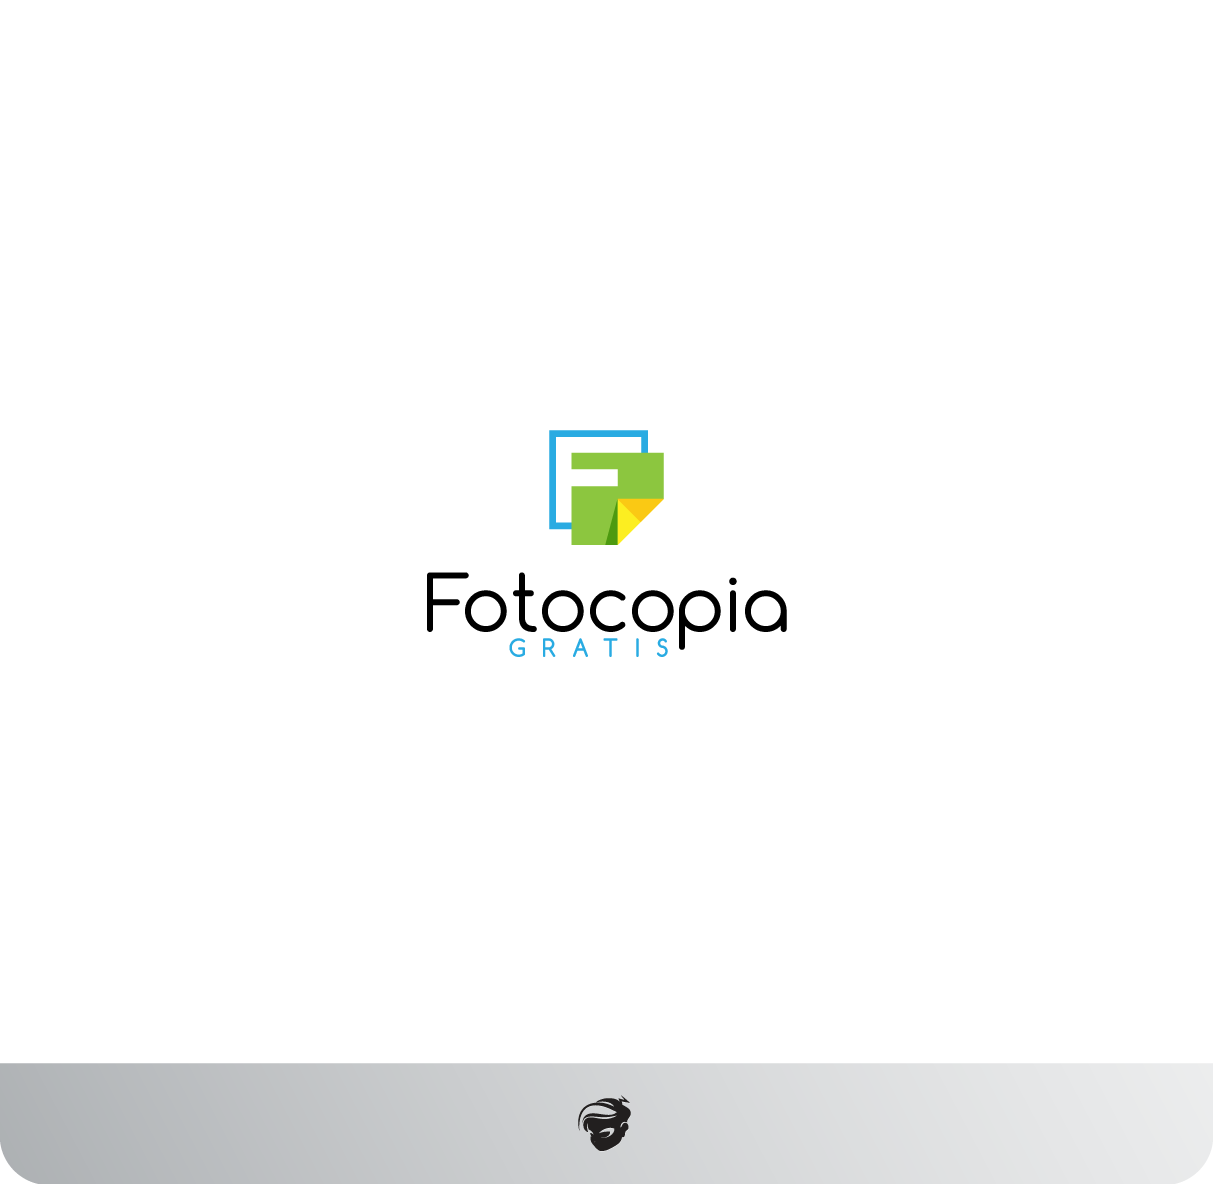 Logo Design by zesthar - Entry No. 117 in the Logo Design Contest Inspiring Logo Design for Fotocopiagratis.